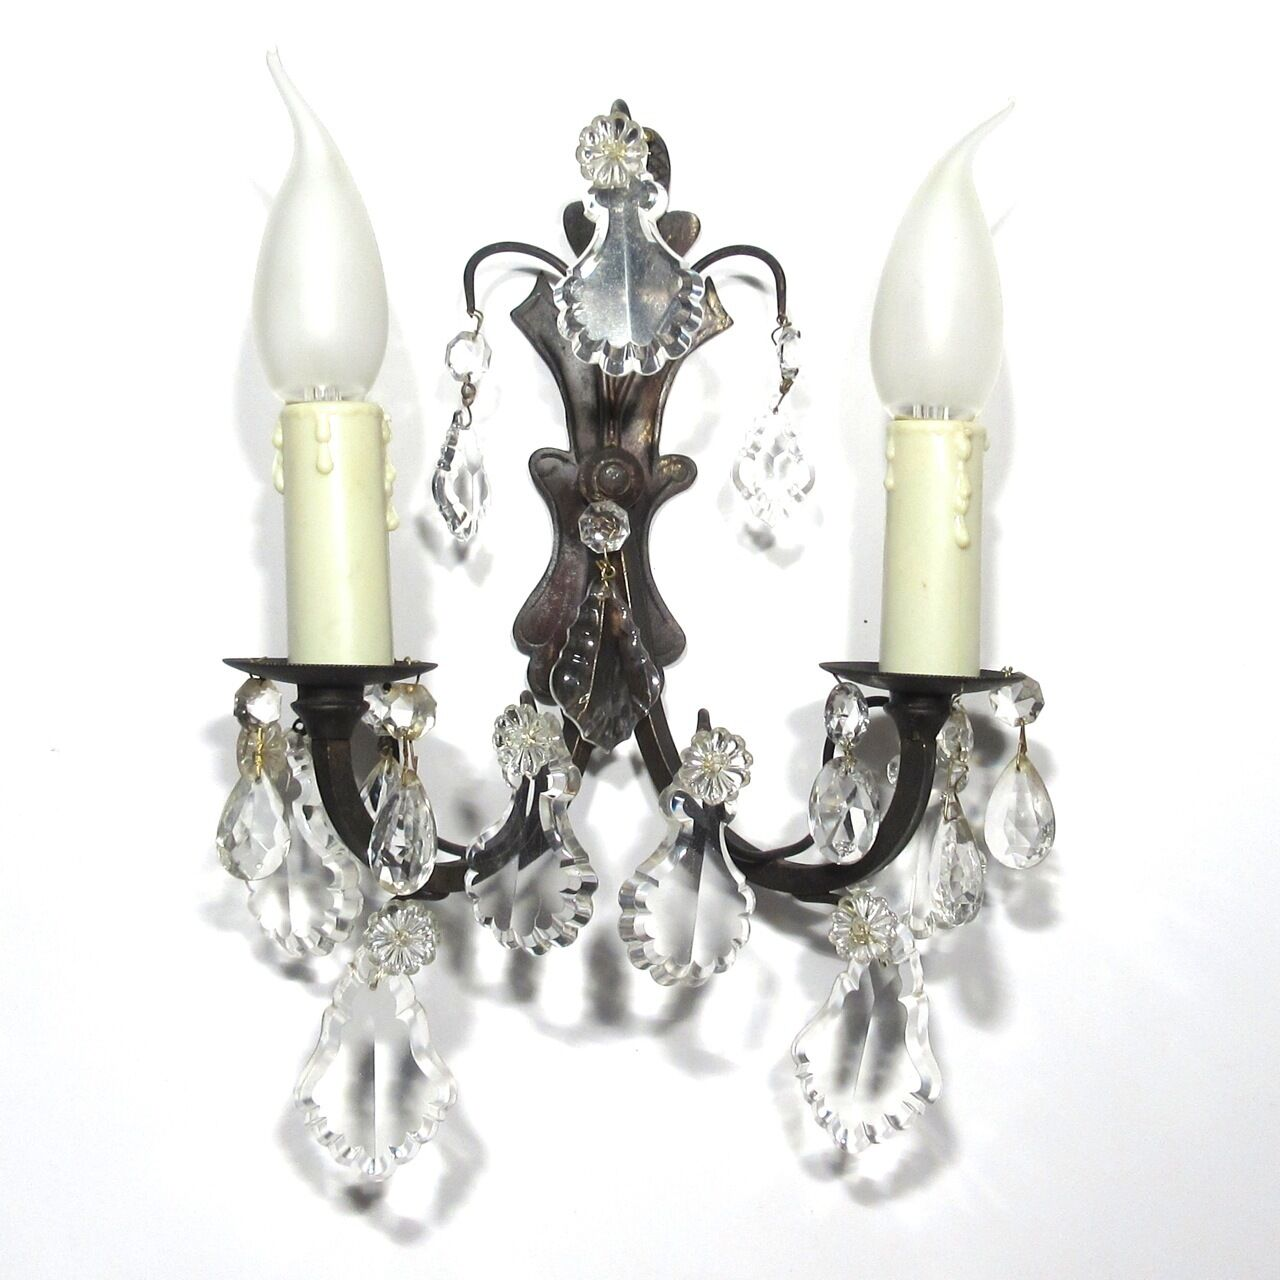 Vintage French Bronze Sconce with Crystal Pendeloque Prisms